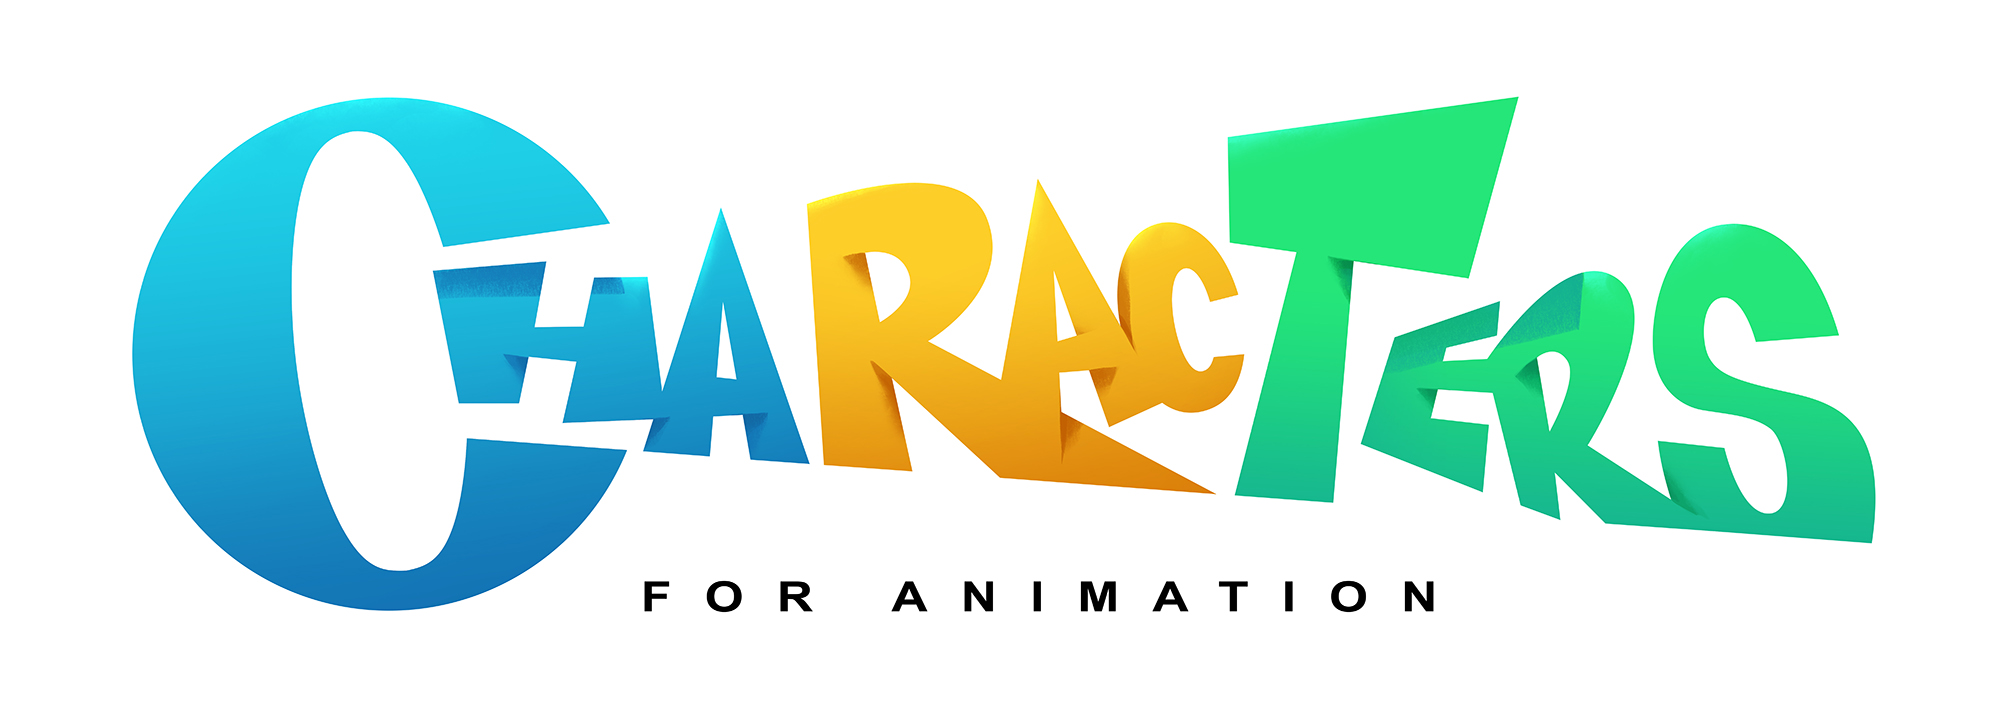 Characters_logo_highres